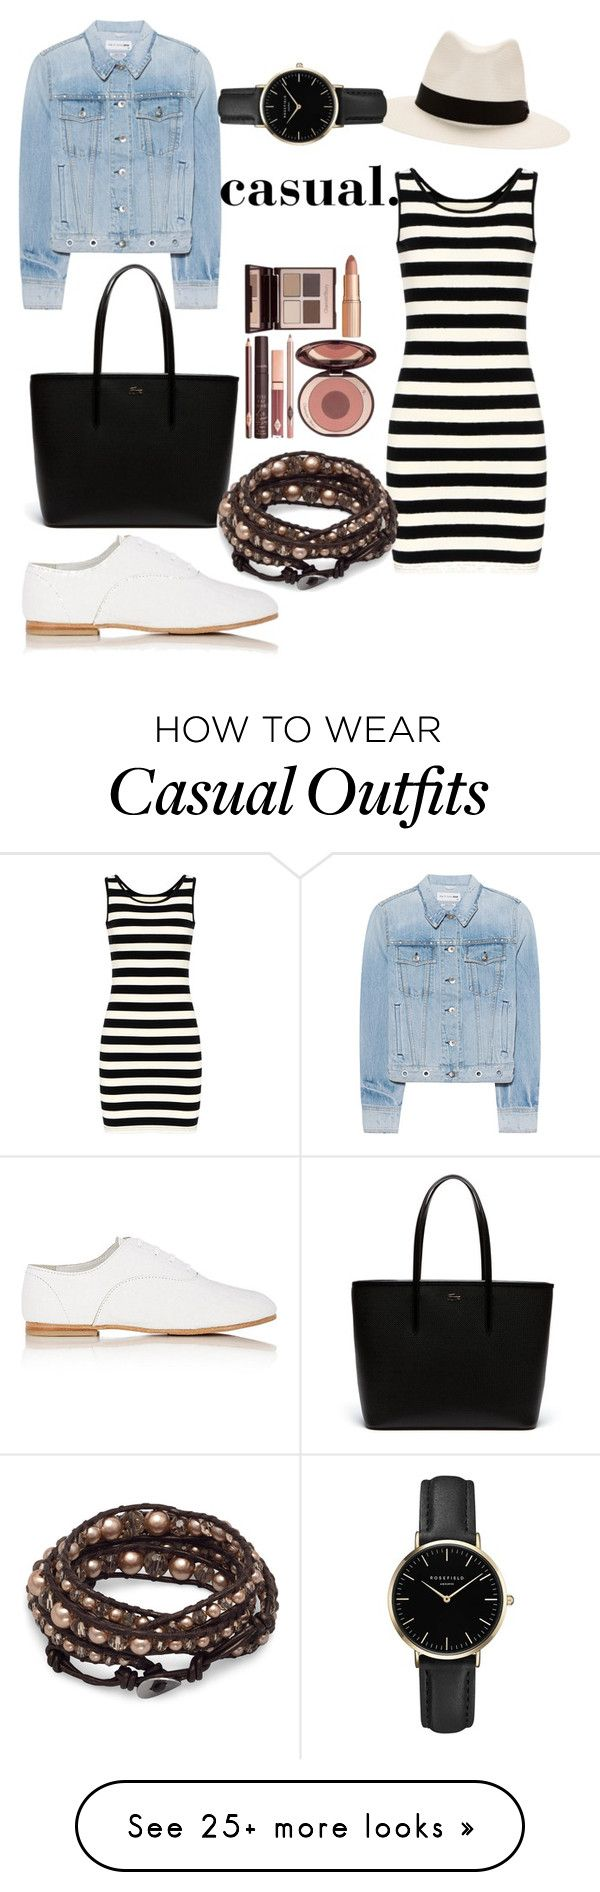 """casual spring look."" by nolica on Polyvore featuring rag & bone, Lacoste, Charlotte Tilbury, ROSEFIELD, casual, denimjacket and springlook"